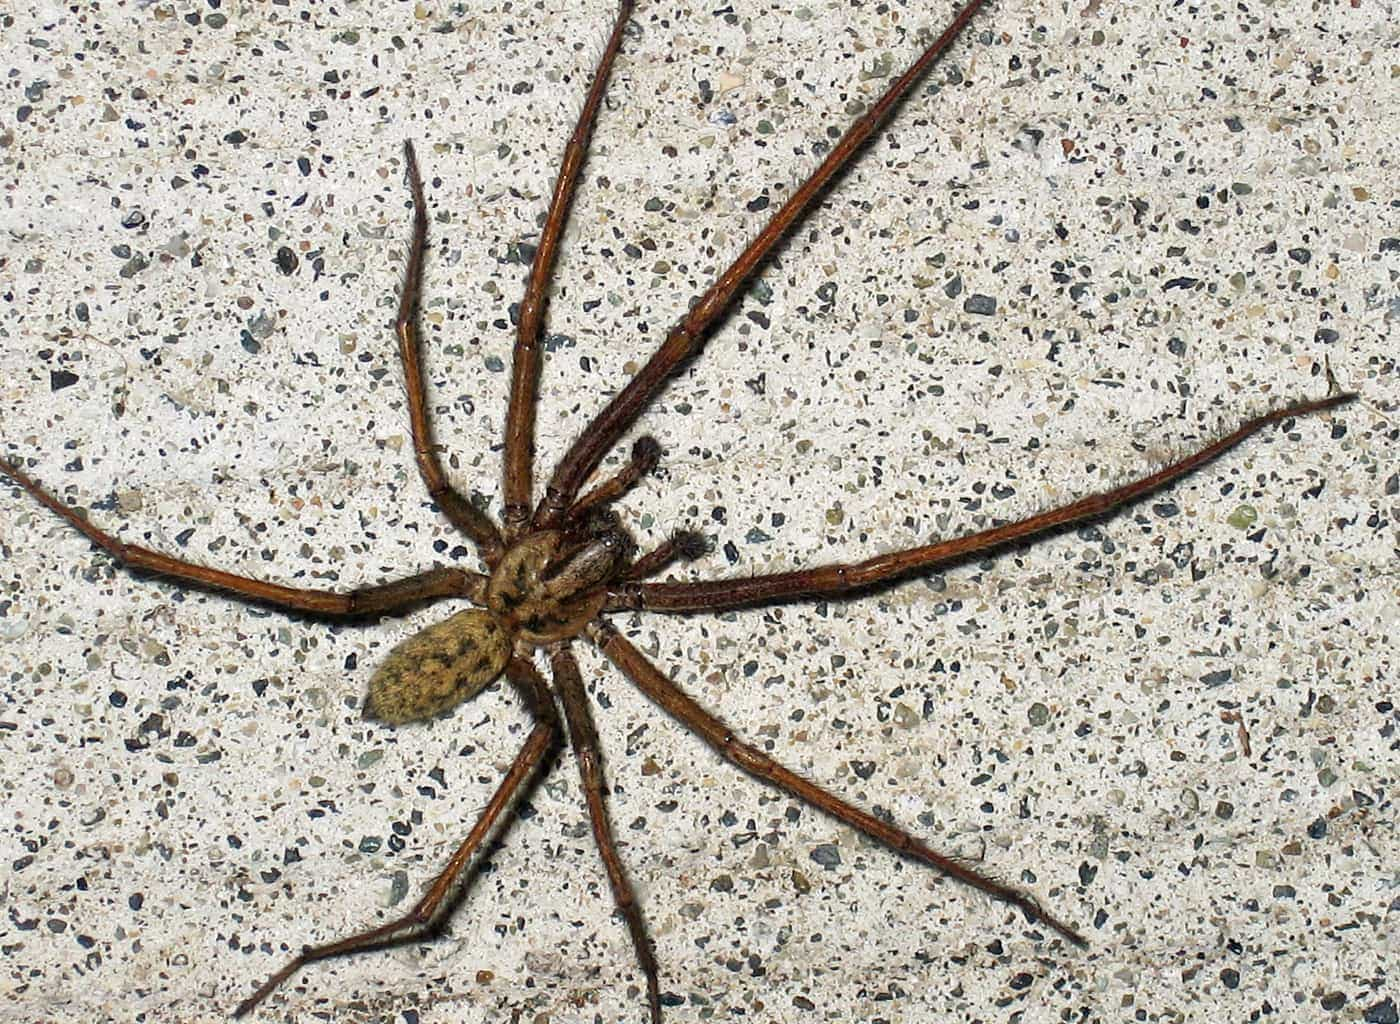 Great Eratigena Atrica House Male Dorsal Male Eratigena Atrica House Washington Giant House Spider Western Washington Giant House Spider Uk curbed Giant House Spider